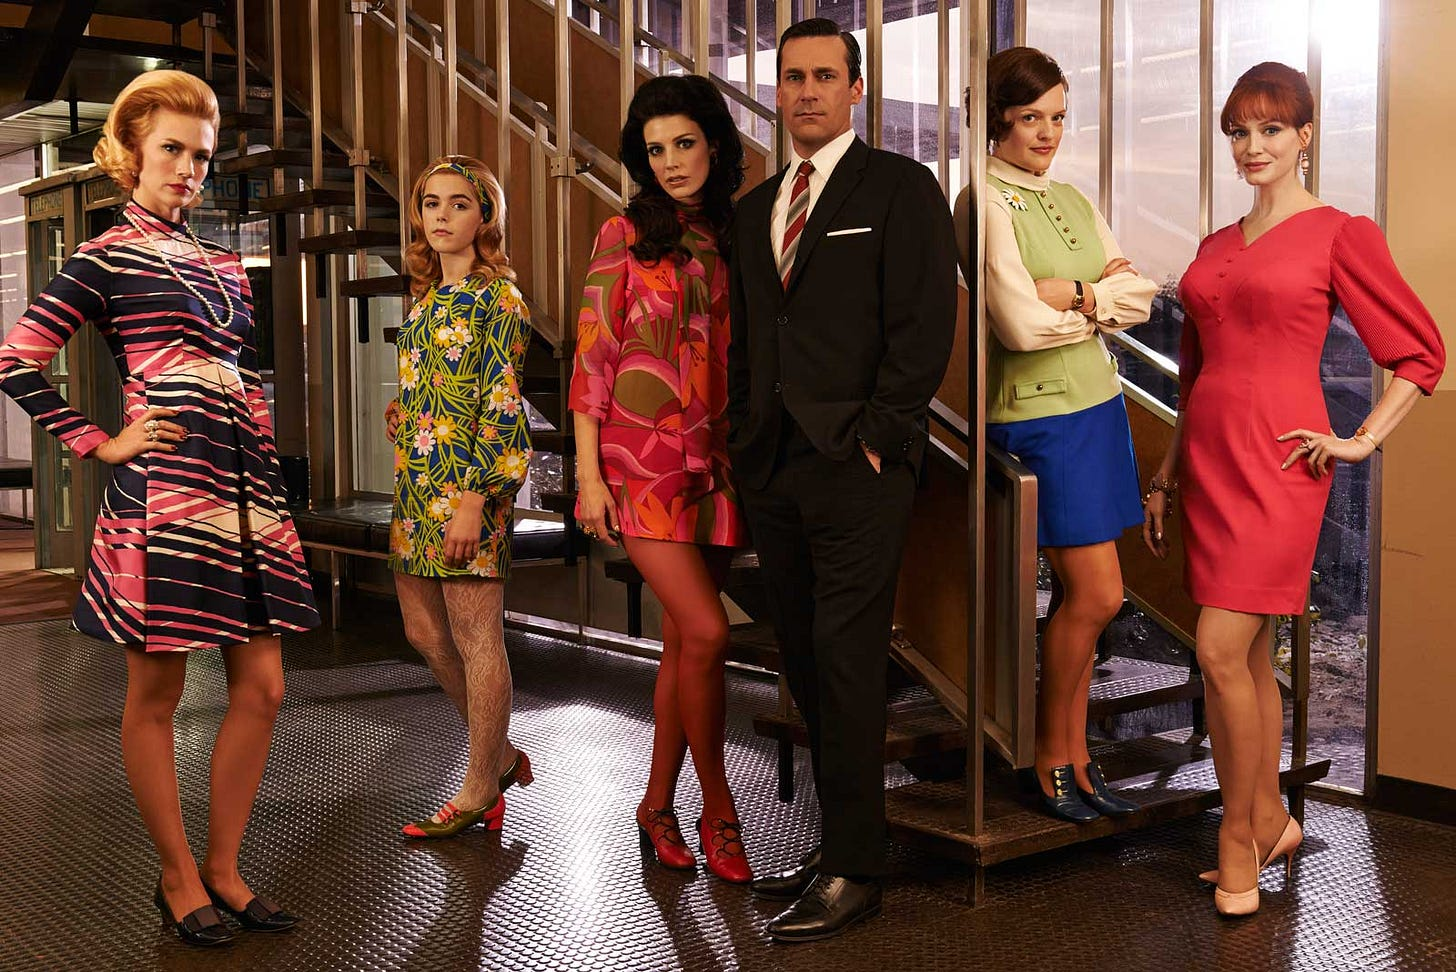 Mad Men   Summary, Characters, & Facts   Britannica